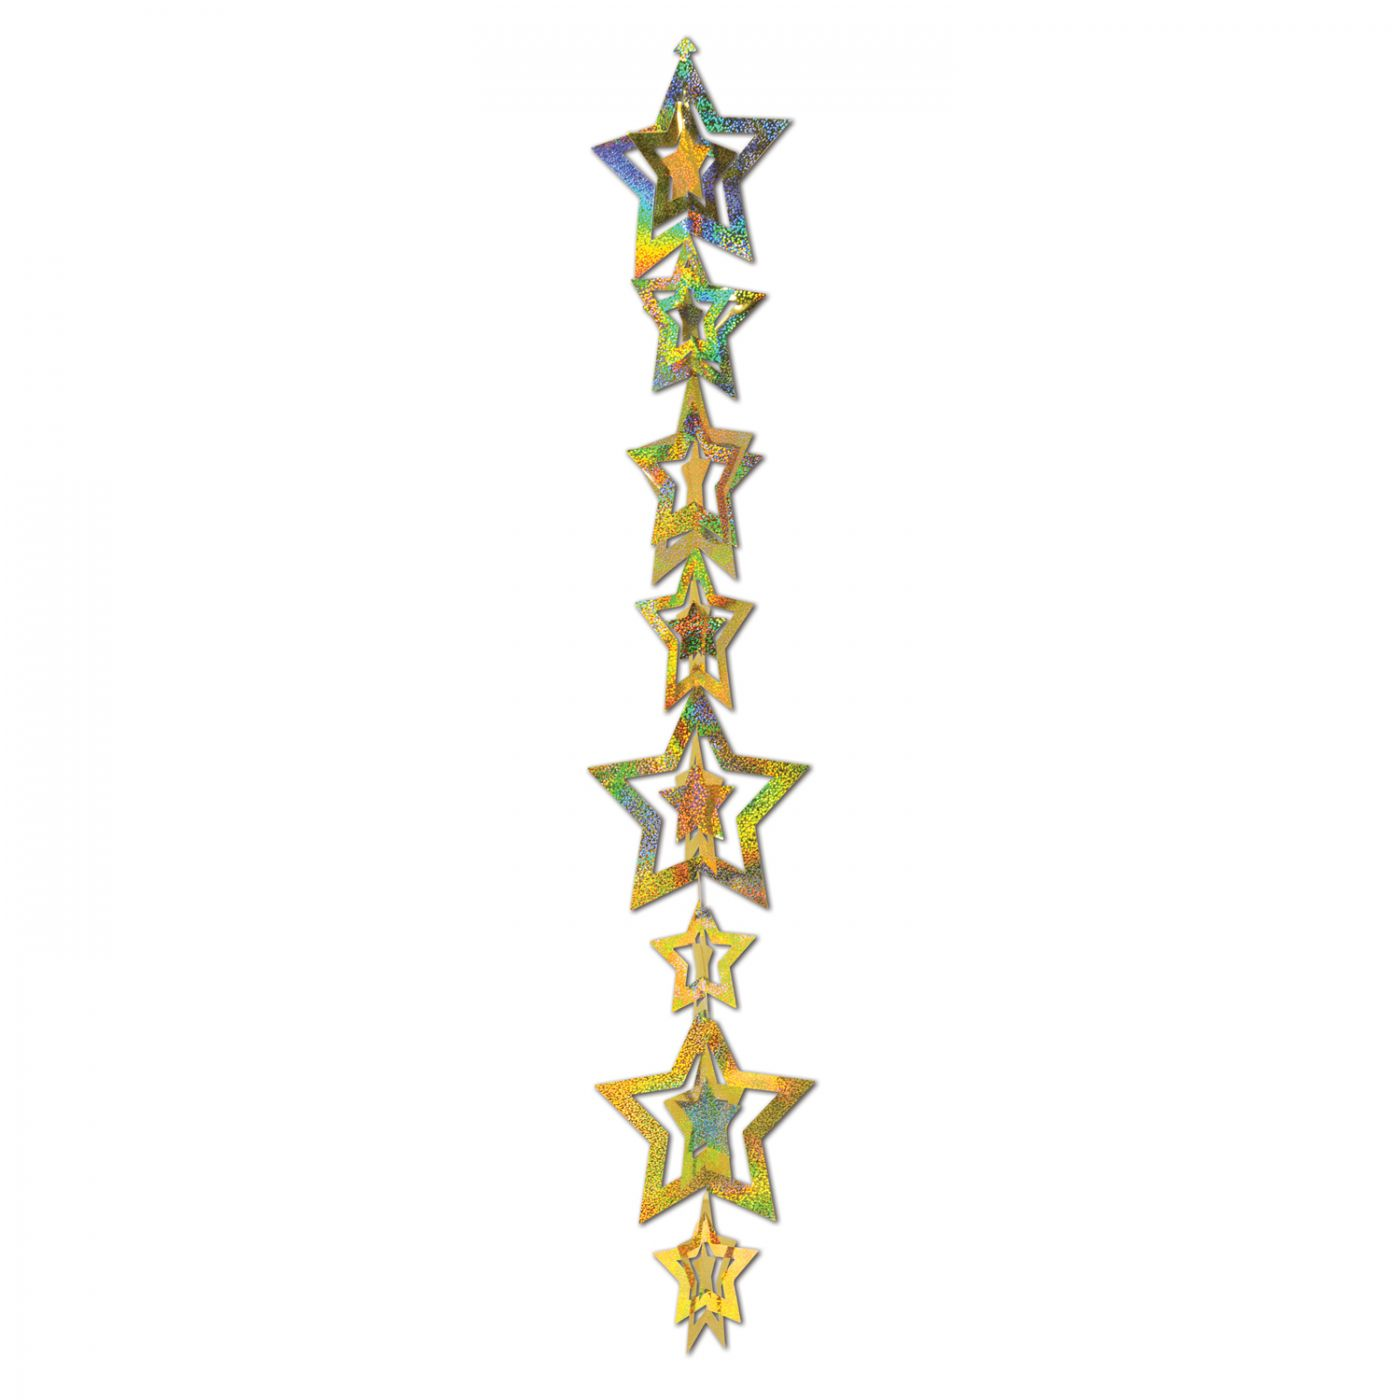 3-D Prismatic Star Gleam 'N Garland image